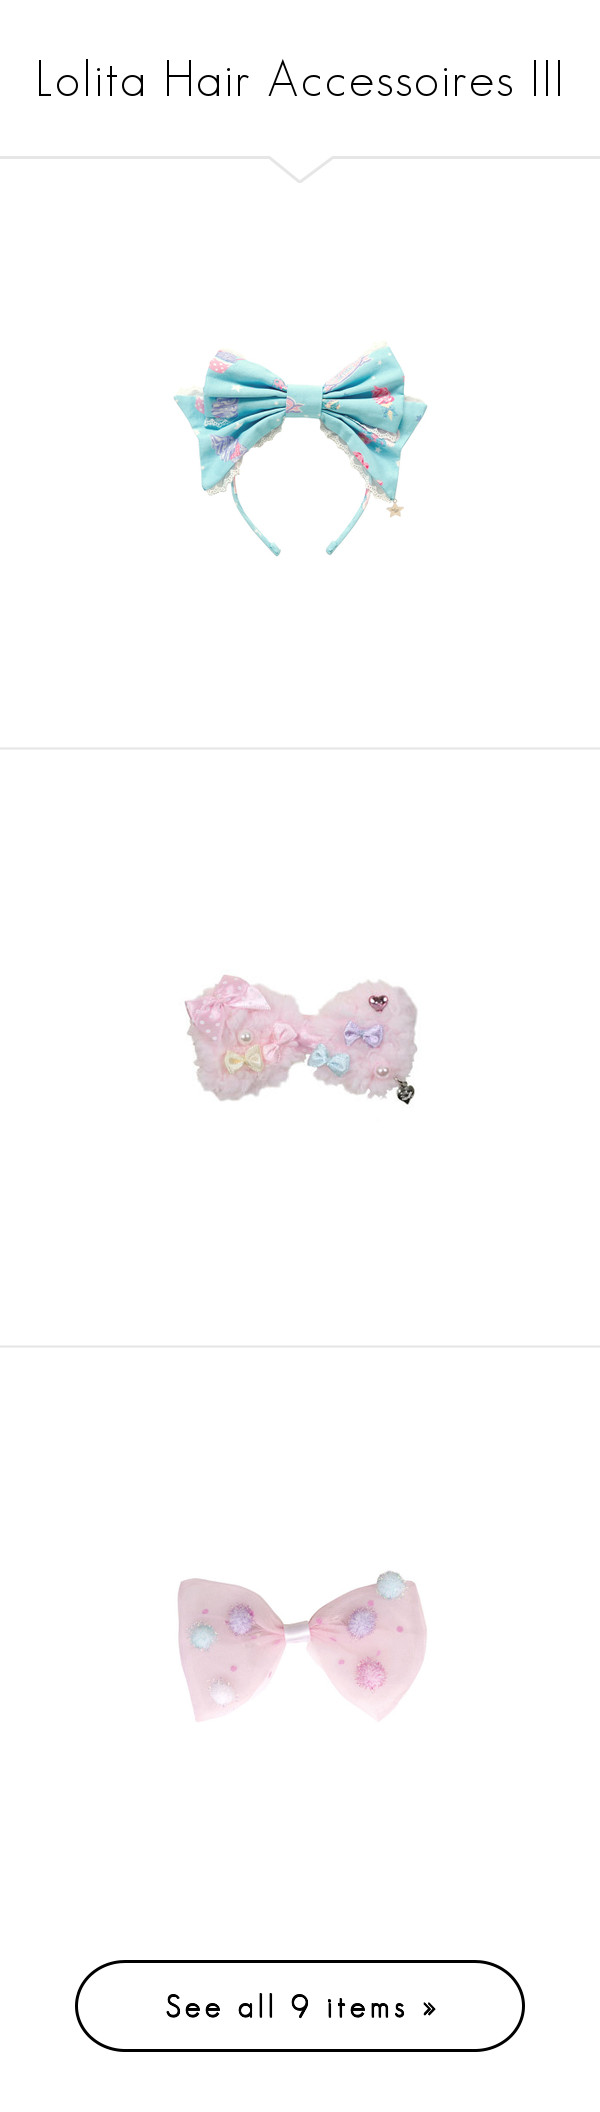 """""""Lolita Hair Accessoires III"""" by ck0427 ❤ liked on Polyvore featuring accessories, hair accessories, headband, lolita, blue, head wrap headband, blue headband, blue hair accessories, headband hair accessories and bows"""